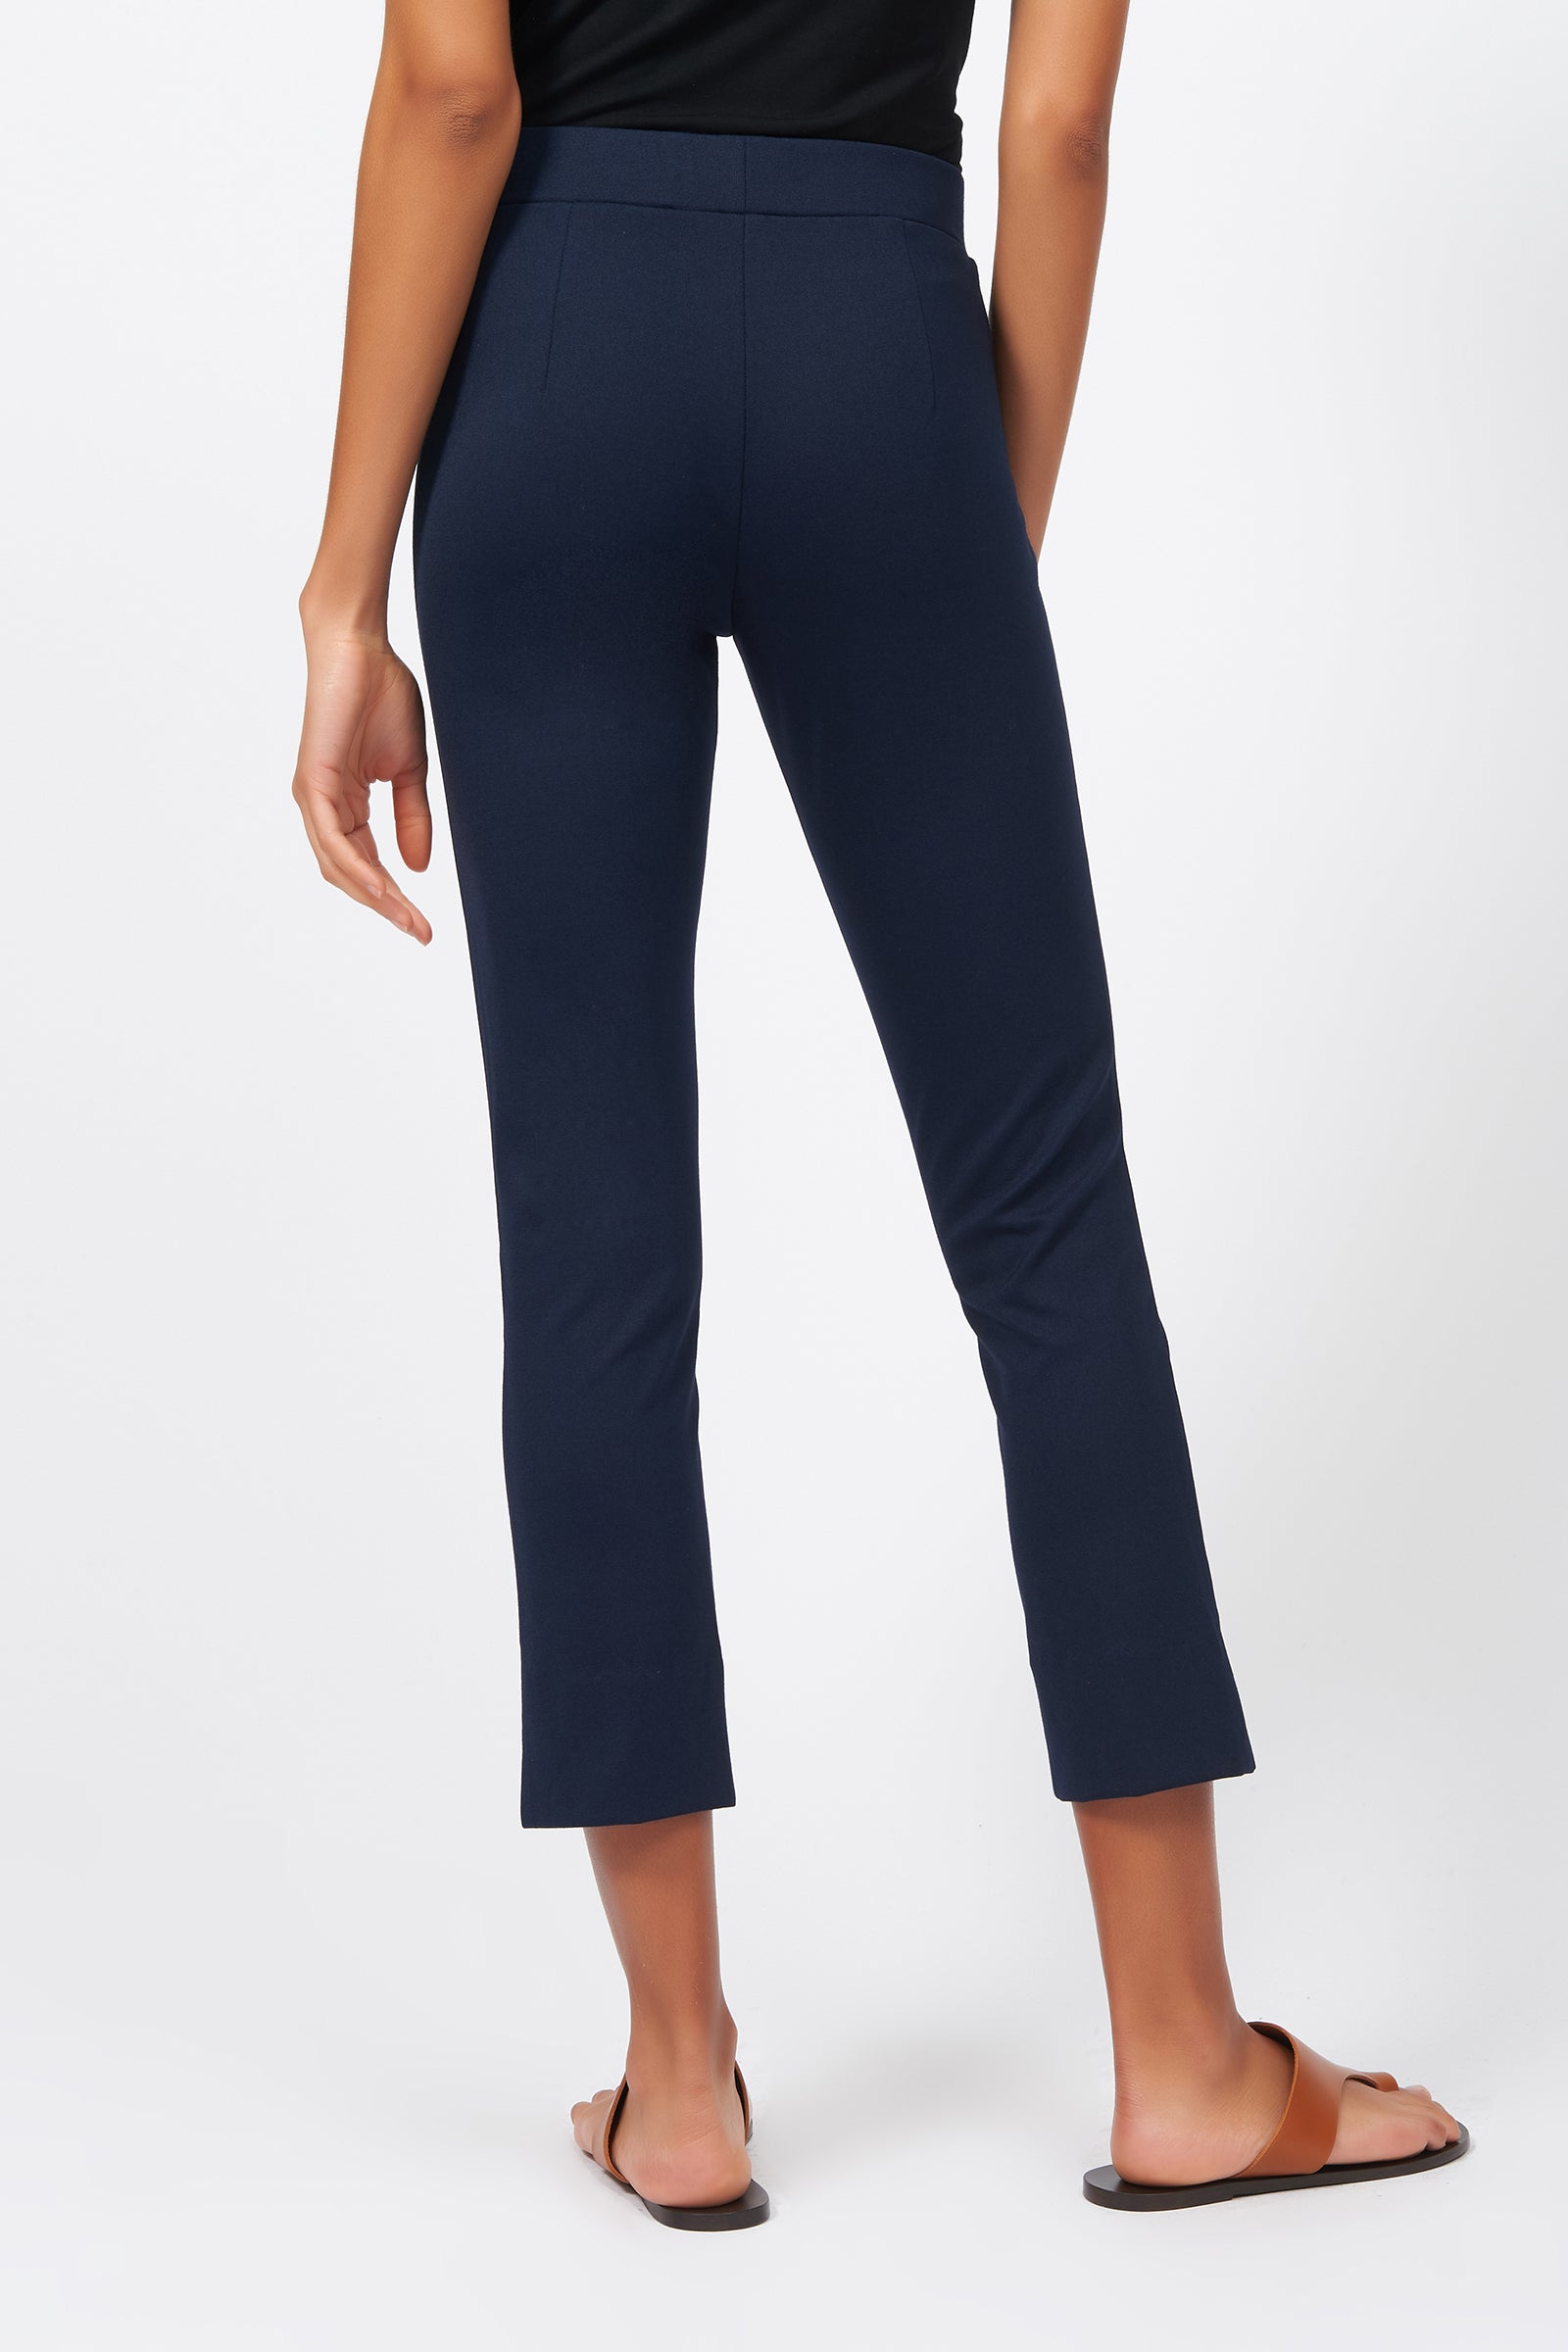 Kal Rieman Pintuck Slit Capri in Navy on Model Back View